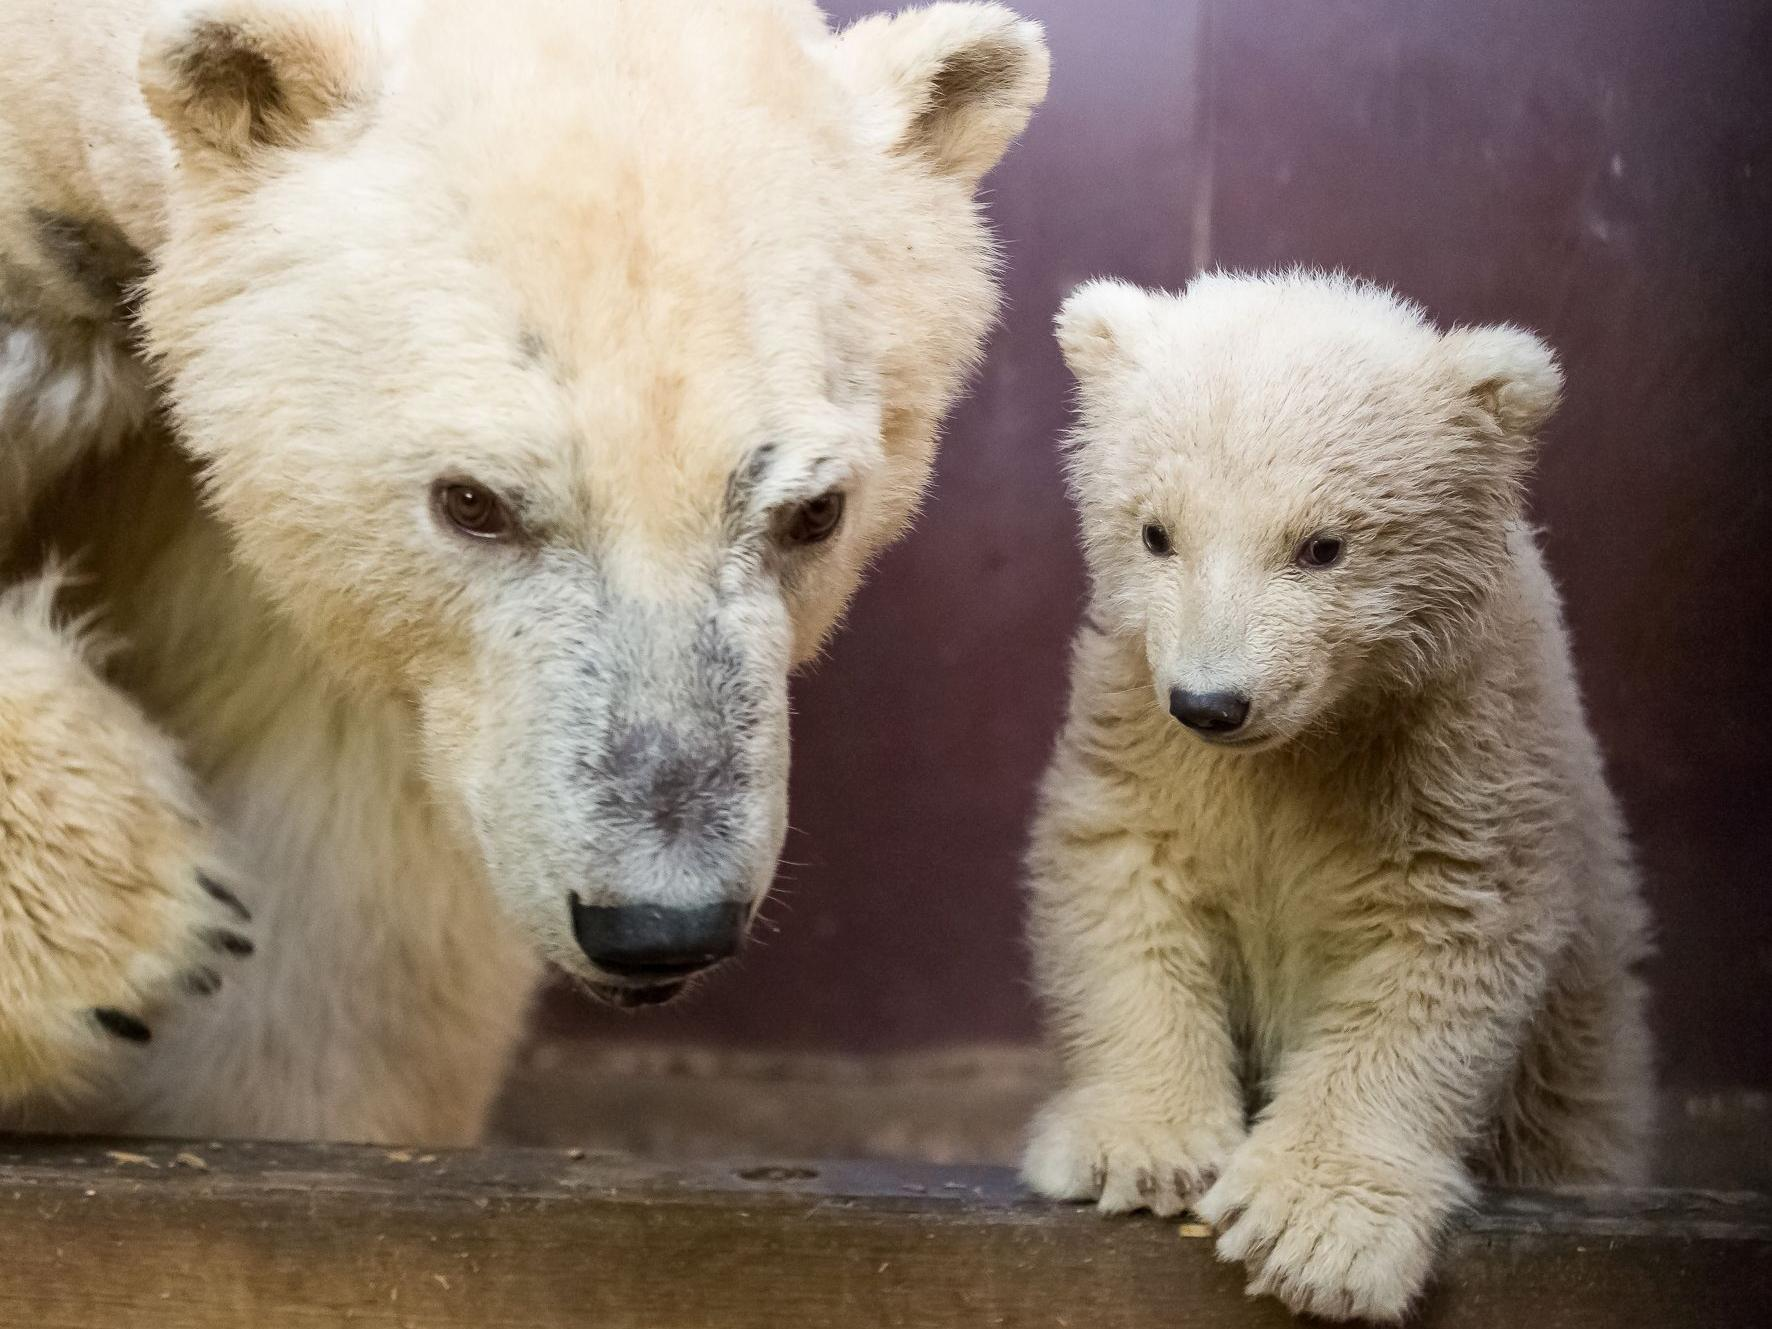 berlin zoo staff devastated over death of polar bear cub fritz the independent. Black Bedroom Furniture Sets. Home Design Ideas